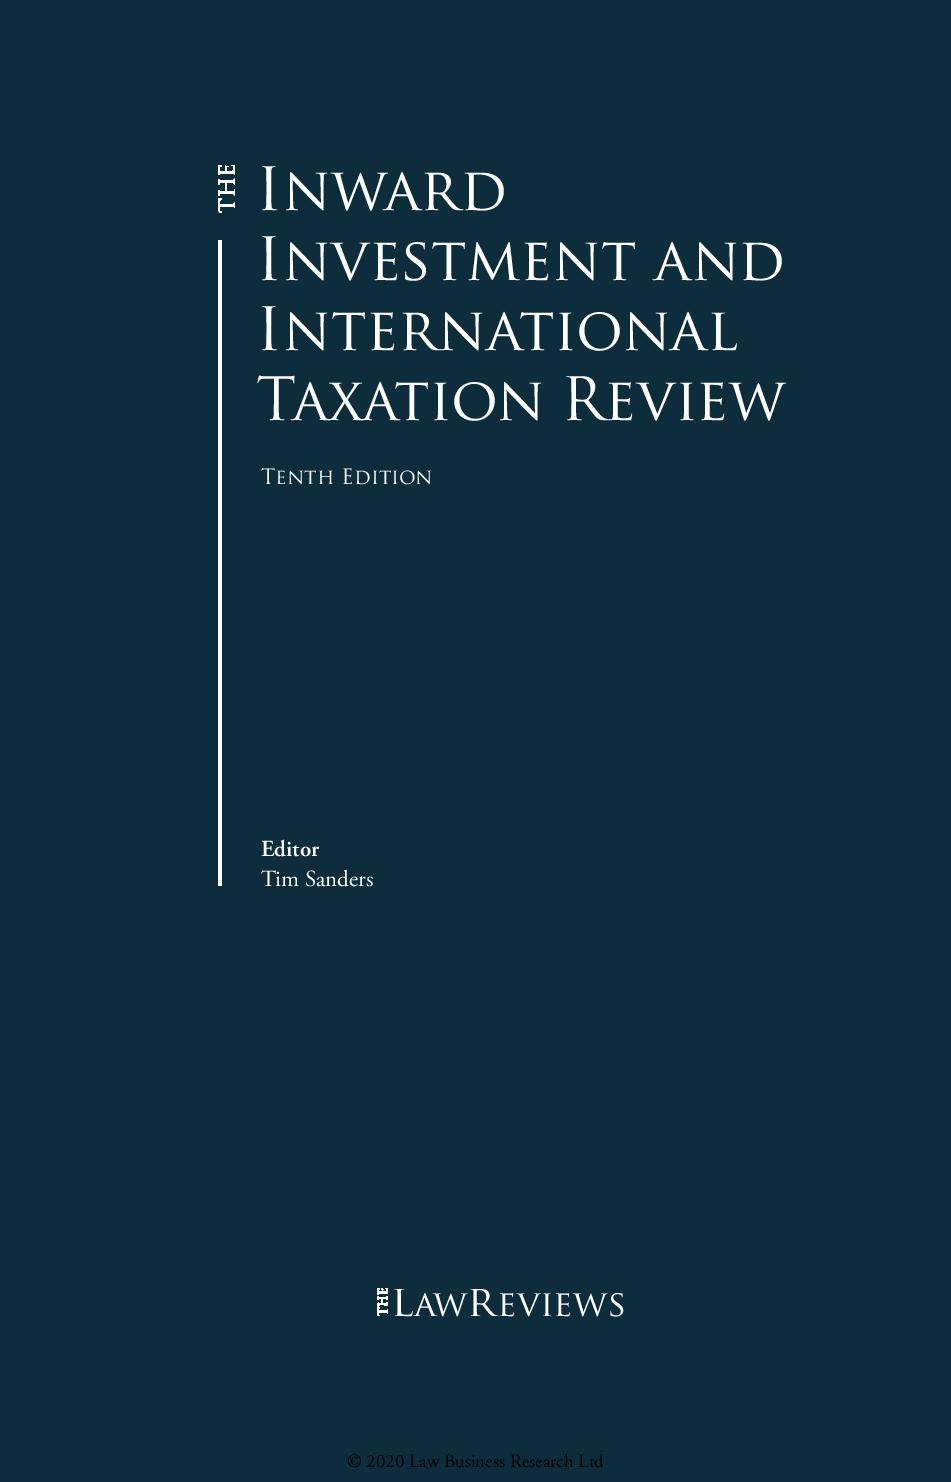 Patrikios Pavlou & Associates: The Inward Investment and International Taxation Review